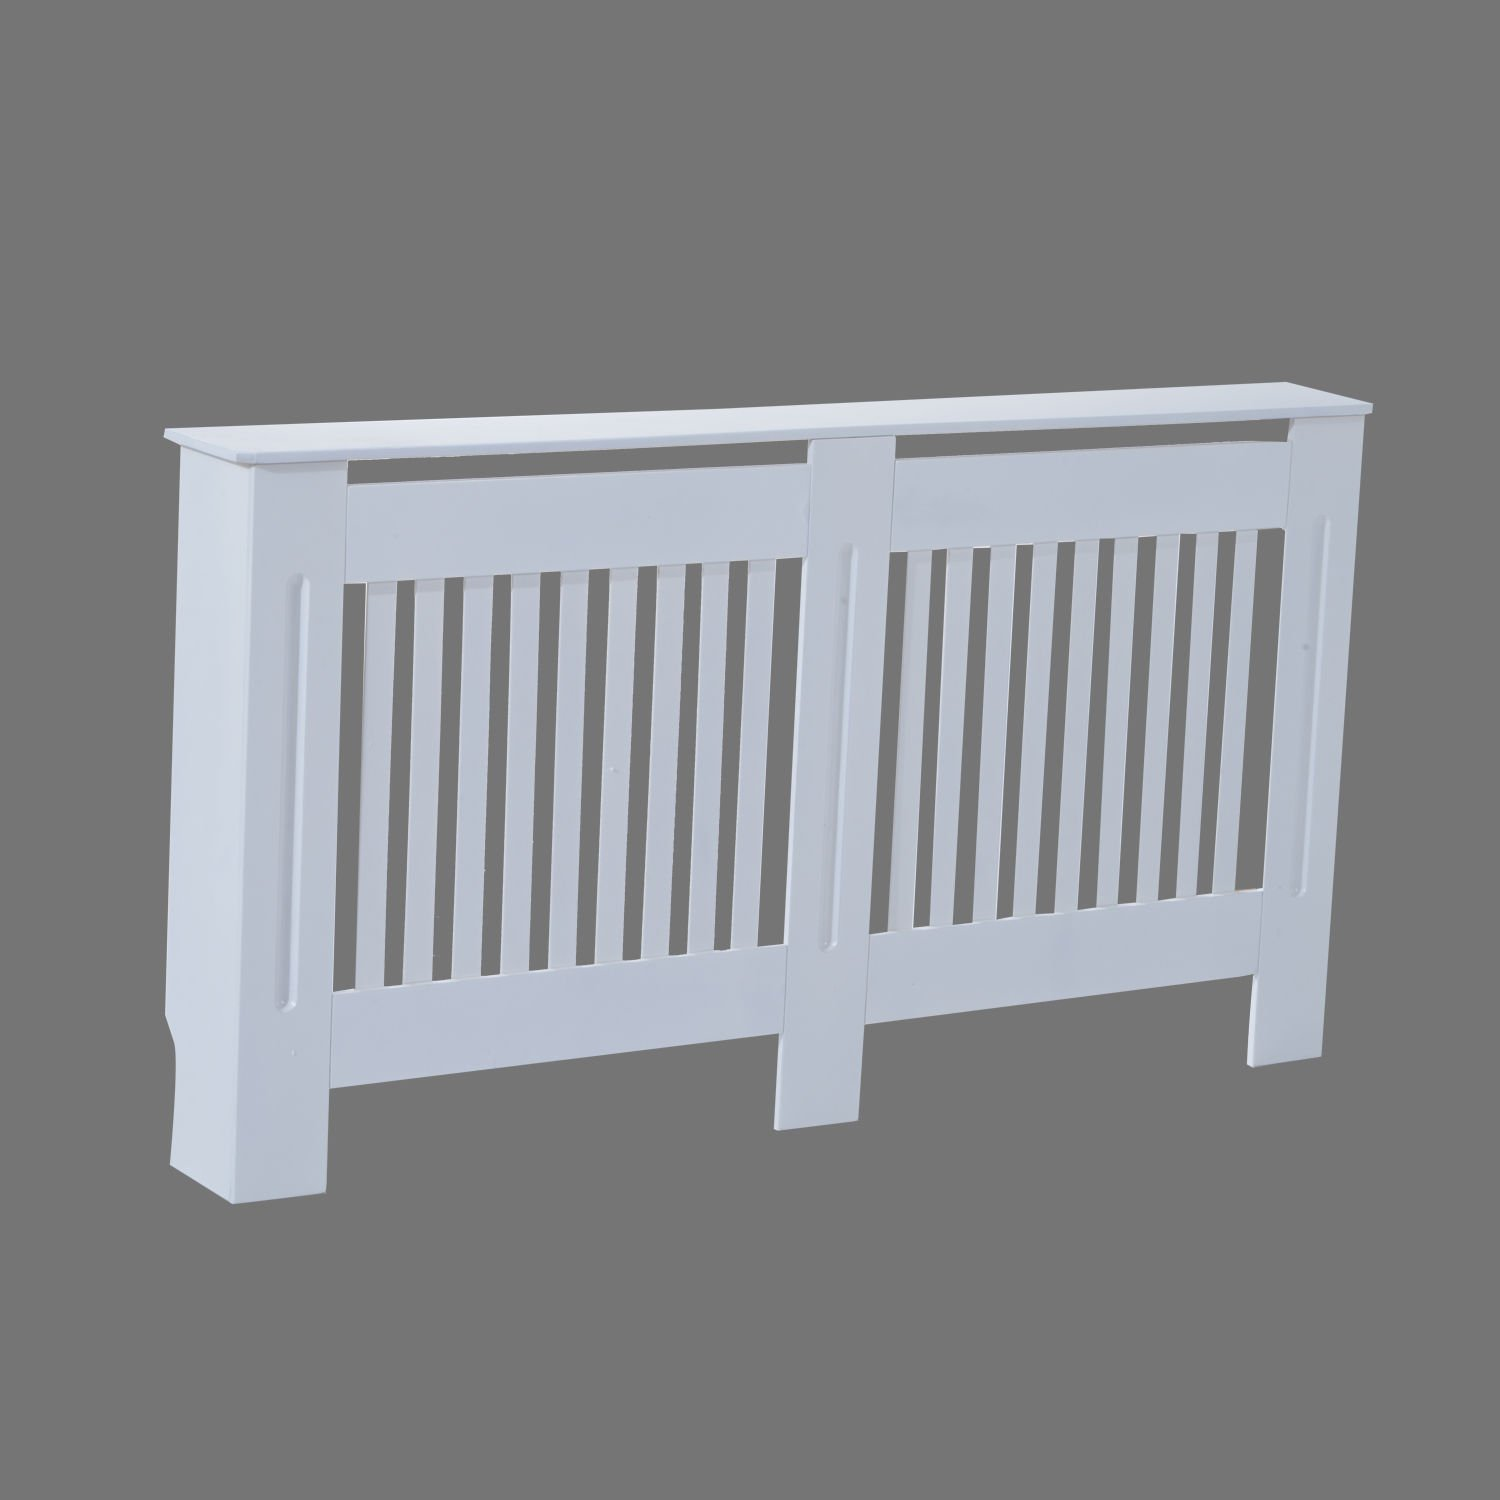 Homcom Slatted Radiator Cover Painted Cabinet Mdf Lined Grill In